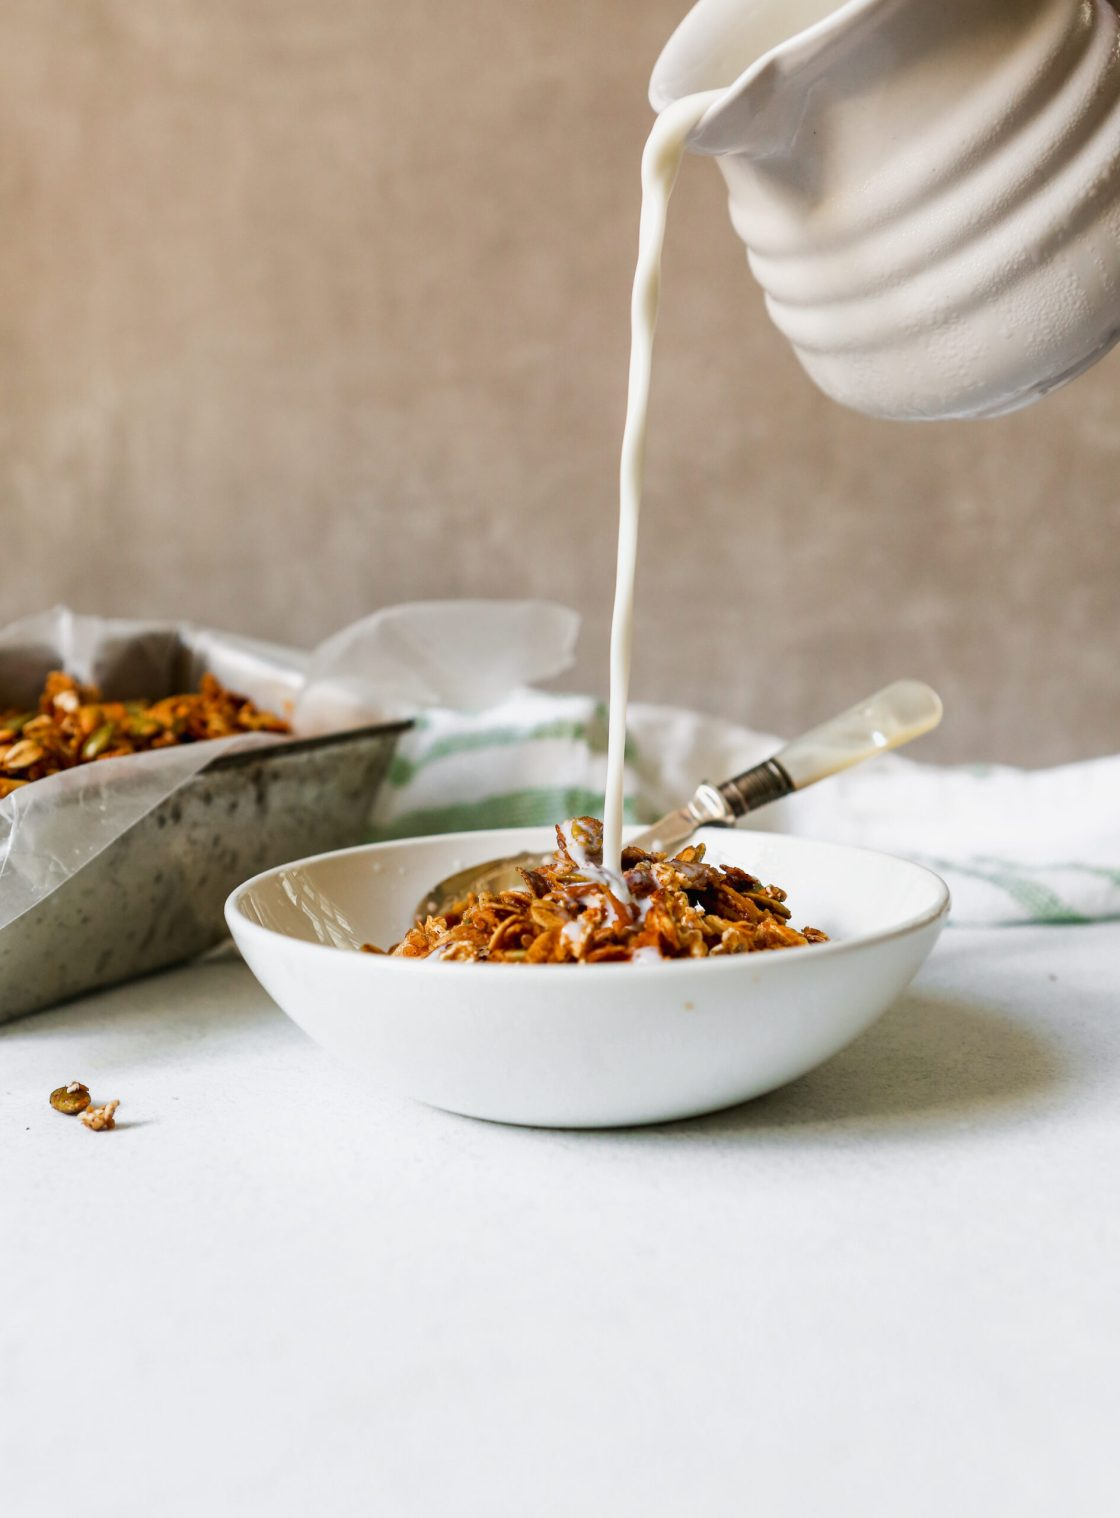 Homemade granola in a white bowl with milk pouring into bowl.